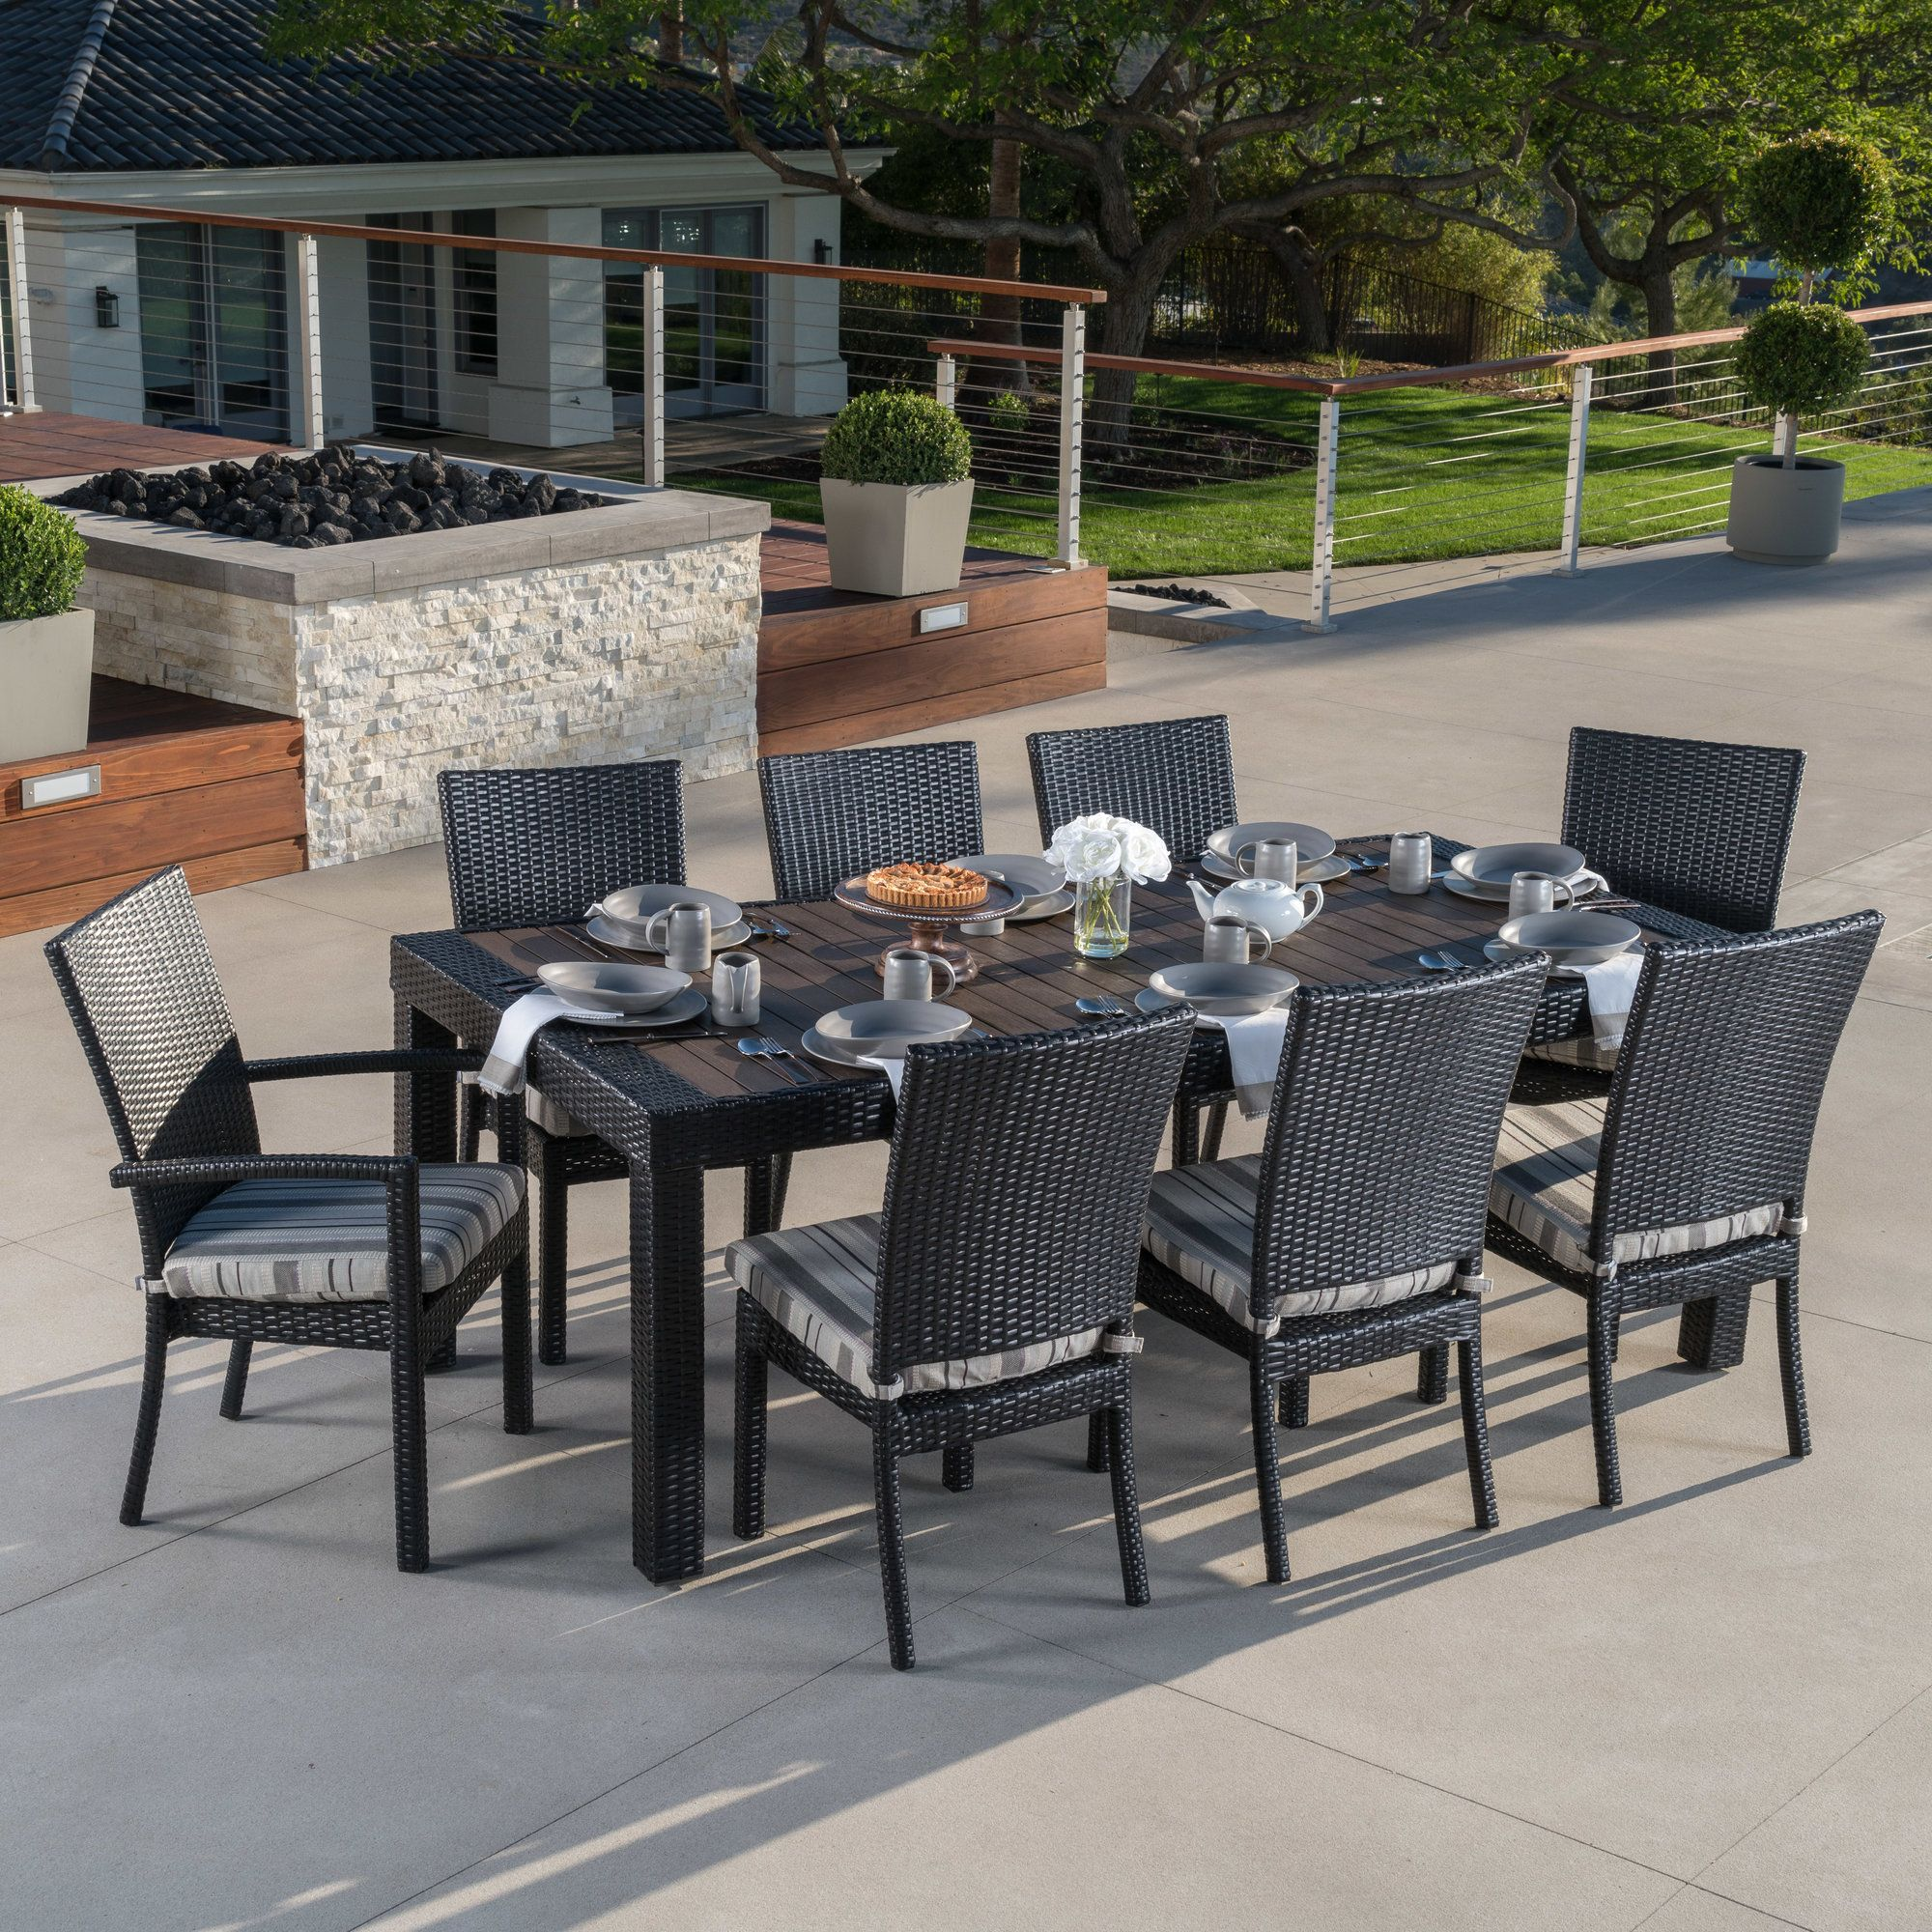 9 Piece Outdoor Dining Set Evansville 9 Piece Outdoor Dining Set With Cushion Pinterest